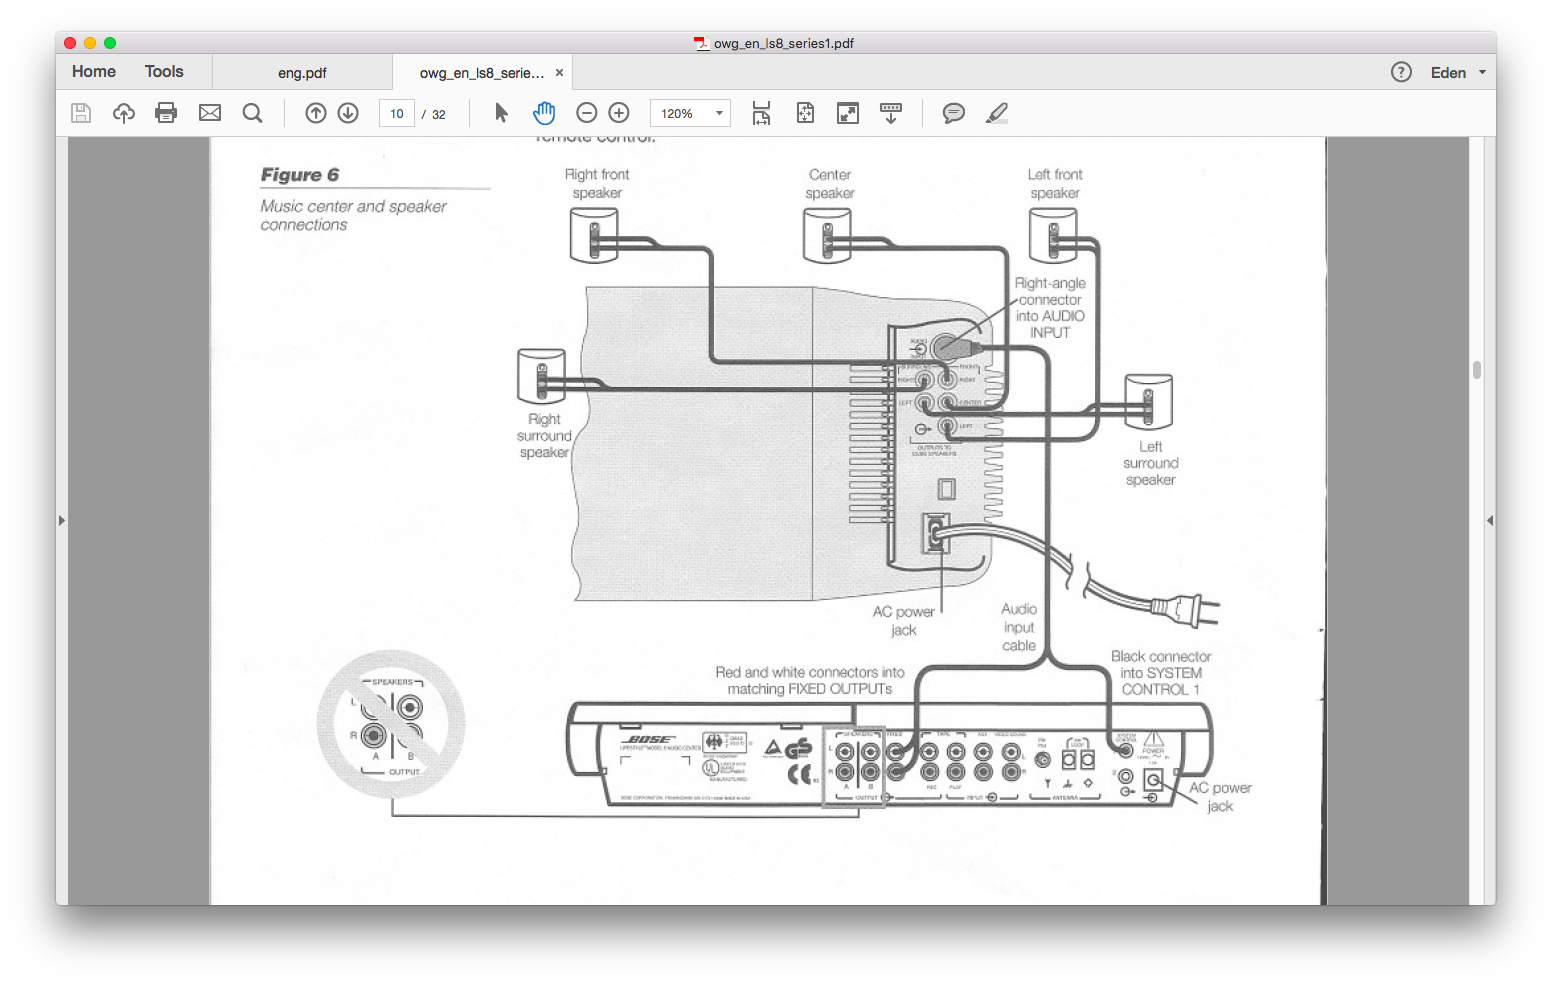 5 1 bose speakers system wiring diagram data wiring diagram blog Bose 901 Speaker Wiring Diagram bose lifestyle 5 wiring diagram wiring diagram data bose subwoofer wiring 5 1 bose speakers system wiring diagram